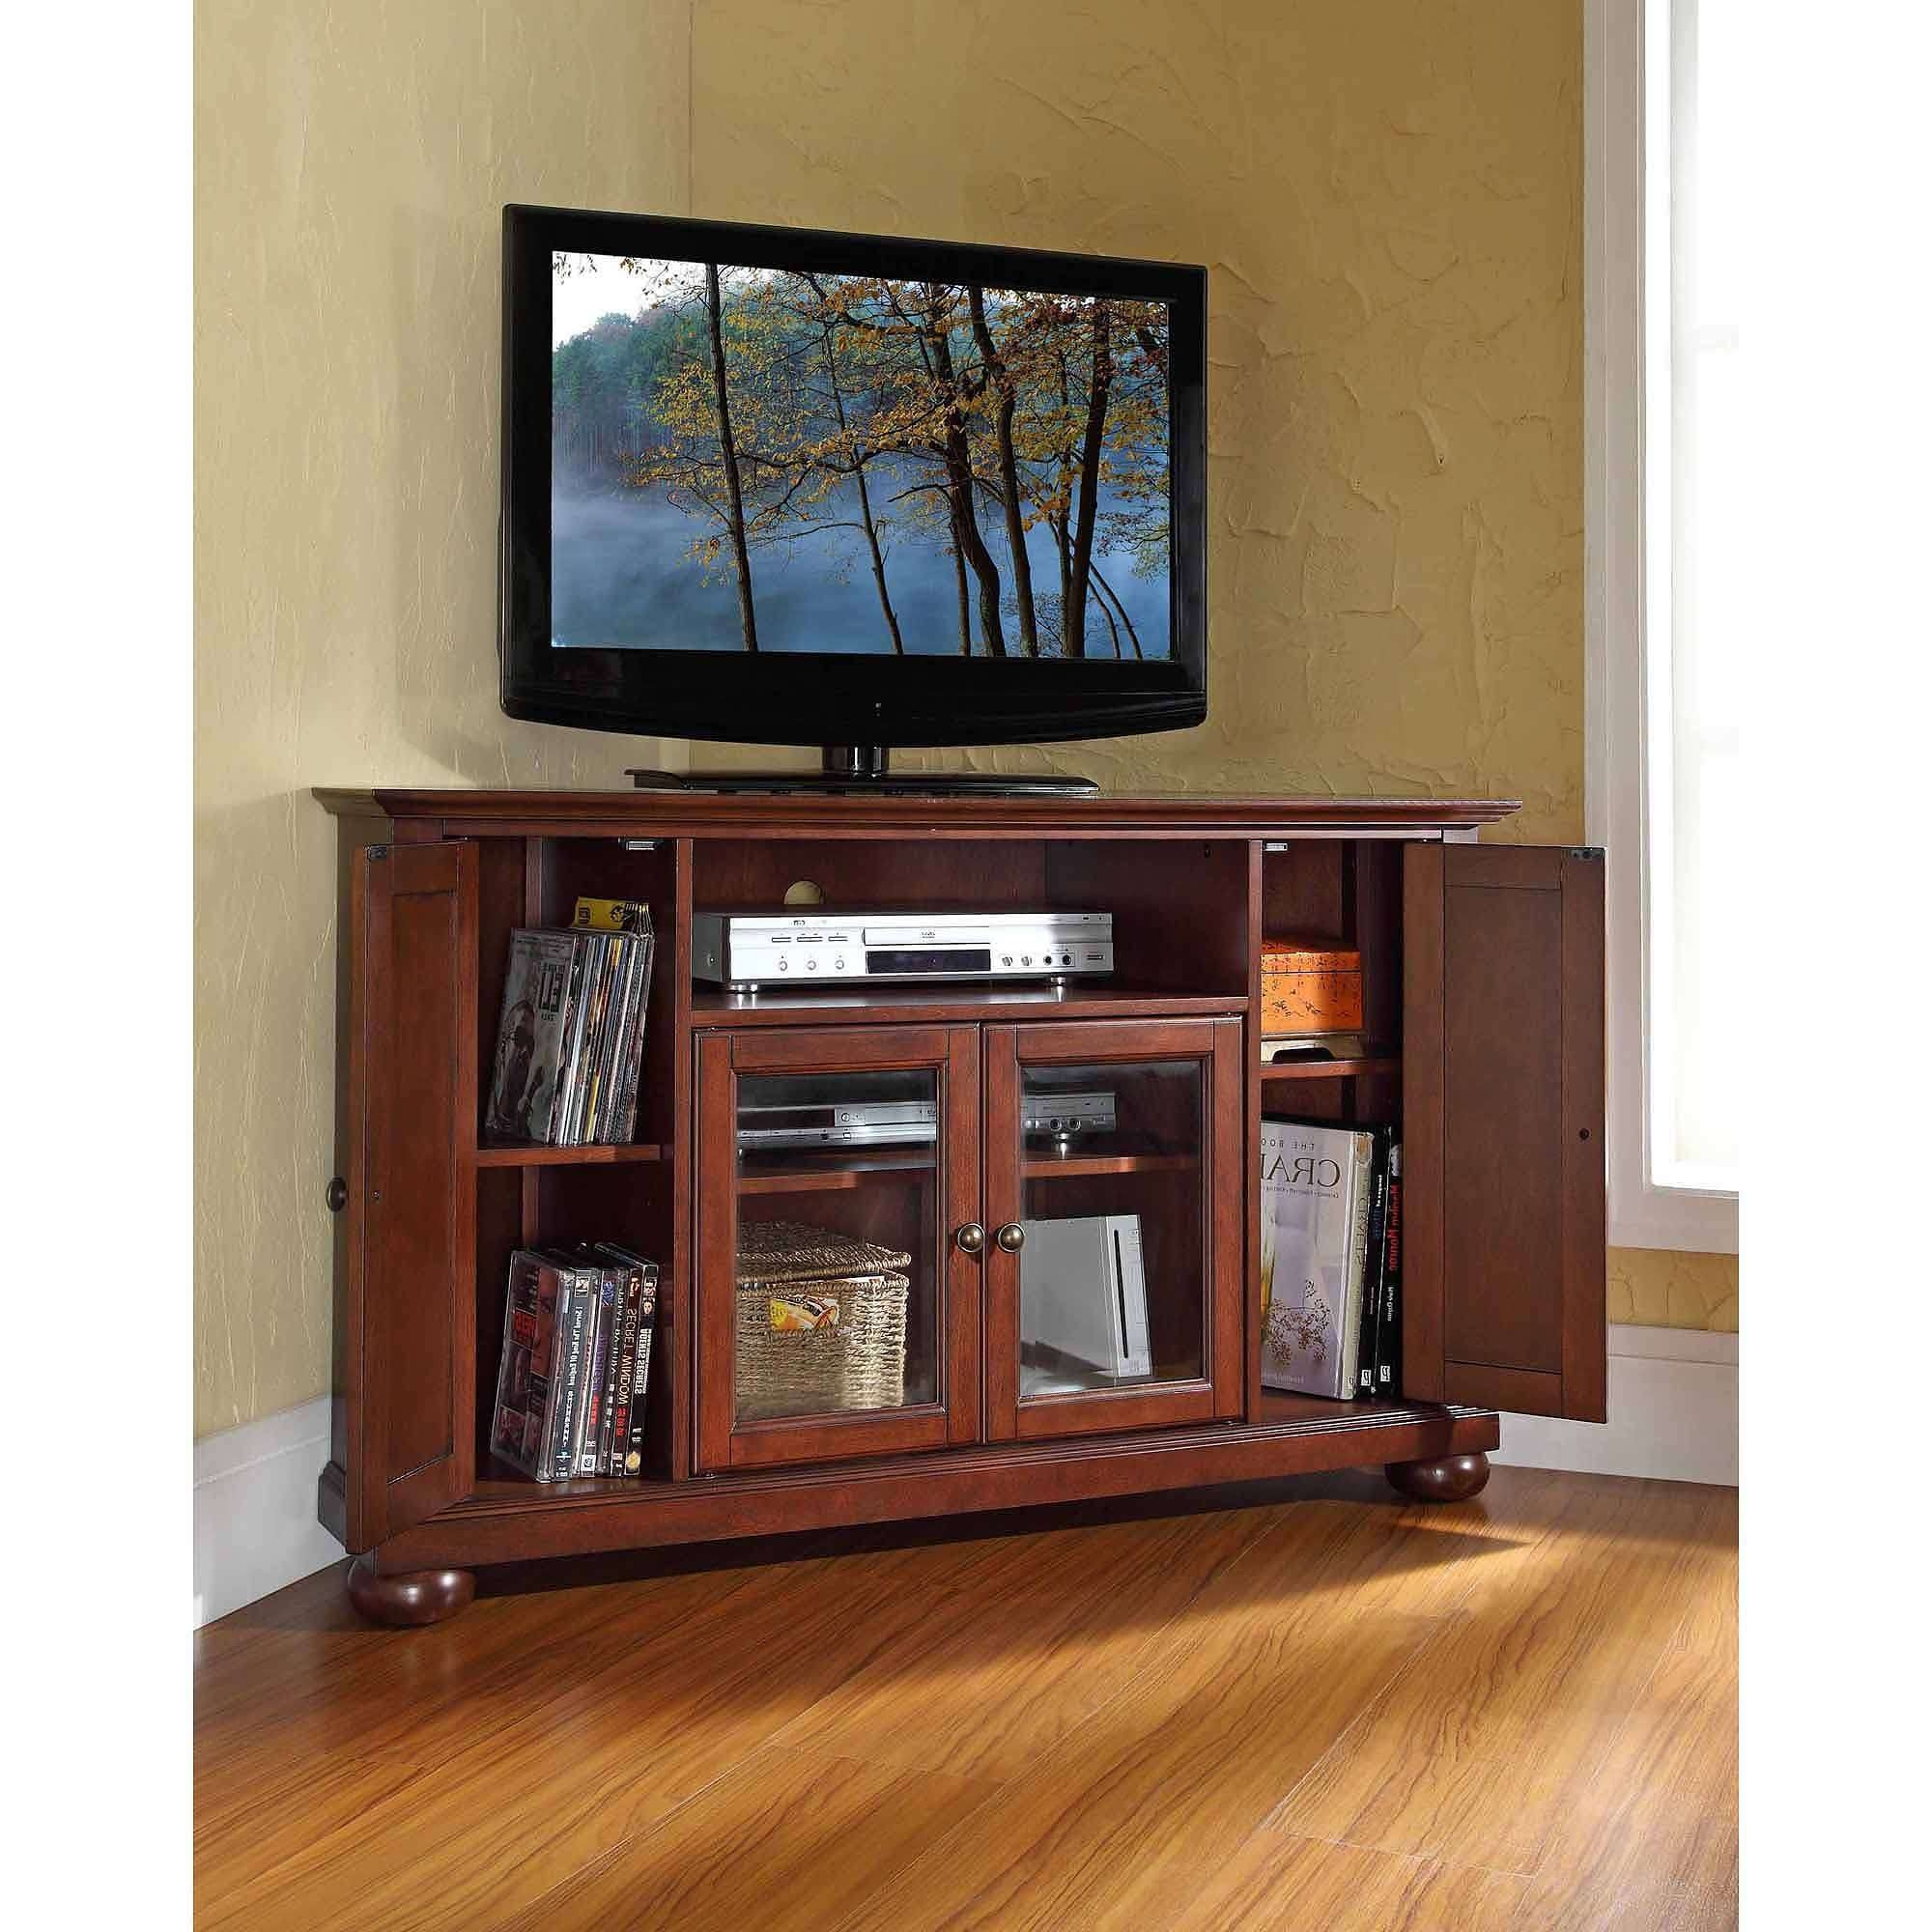 Tv Stand : 32 Unusual 55 Inch Corner Tv Stand With Mount Images With Corner 55 Inch Tv Stands (View 9 of 15)